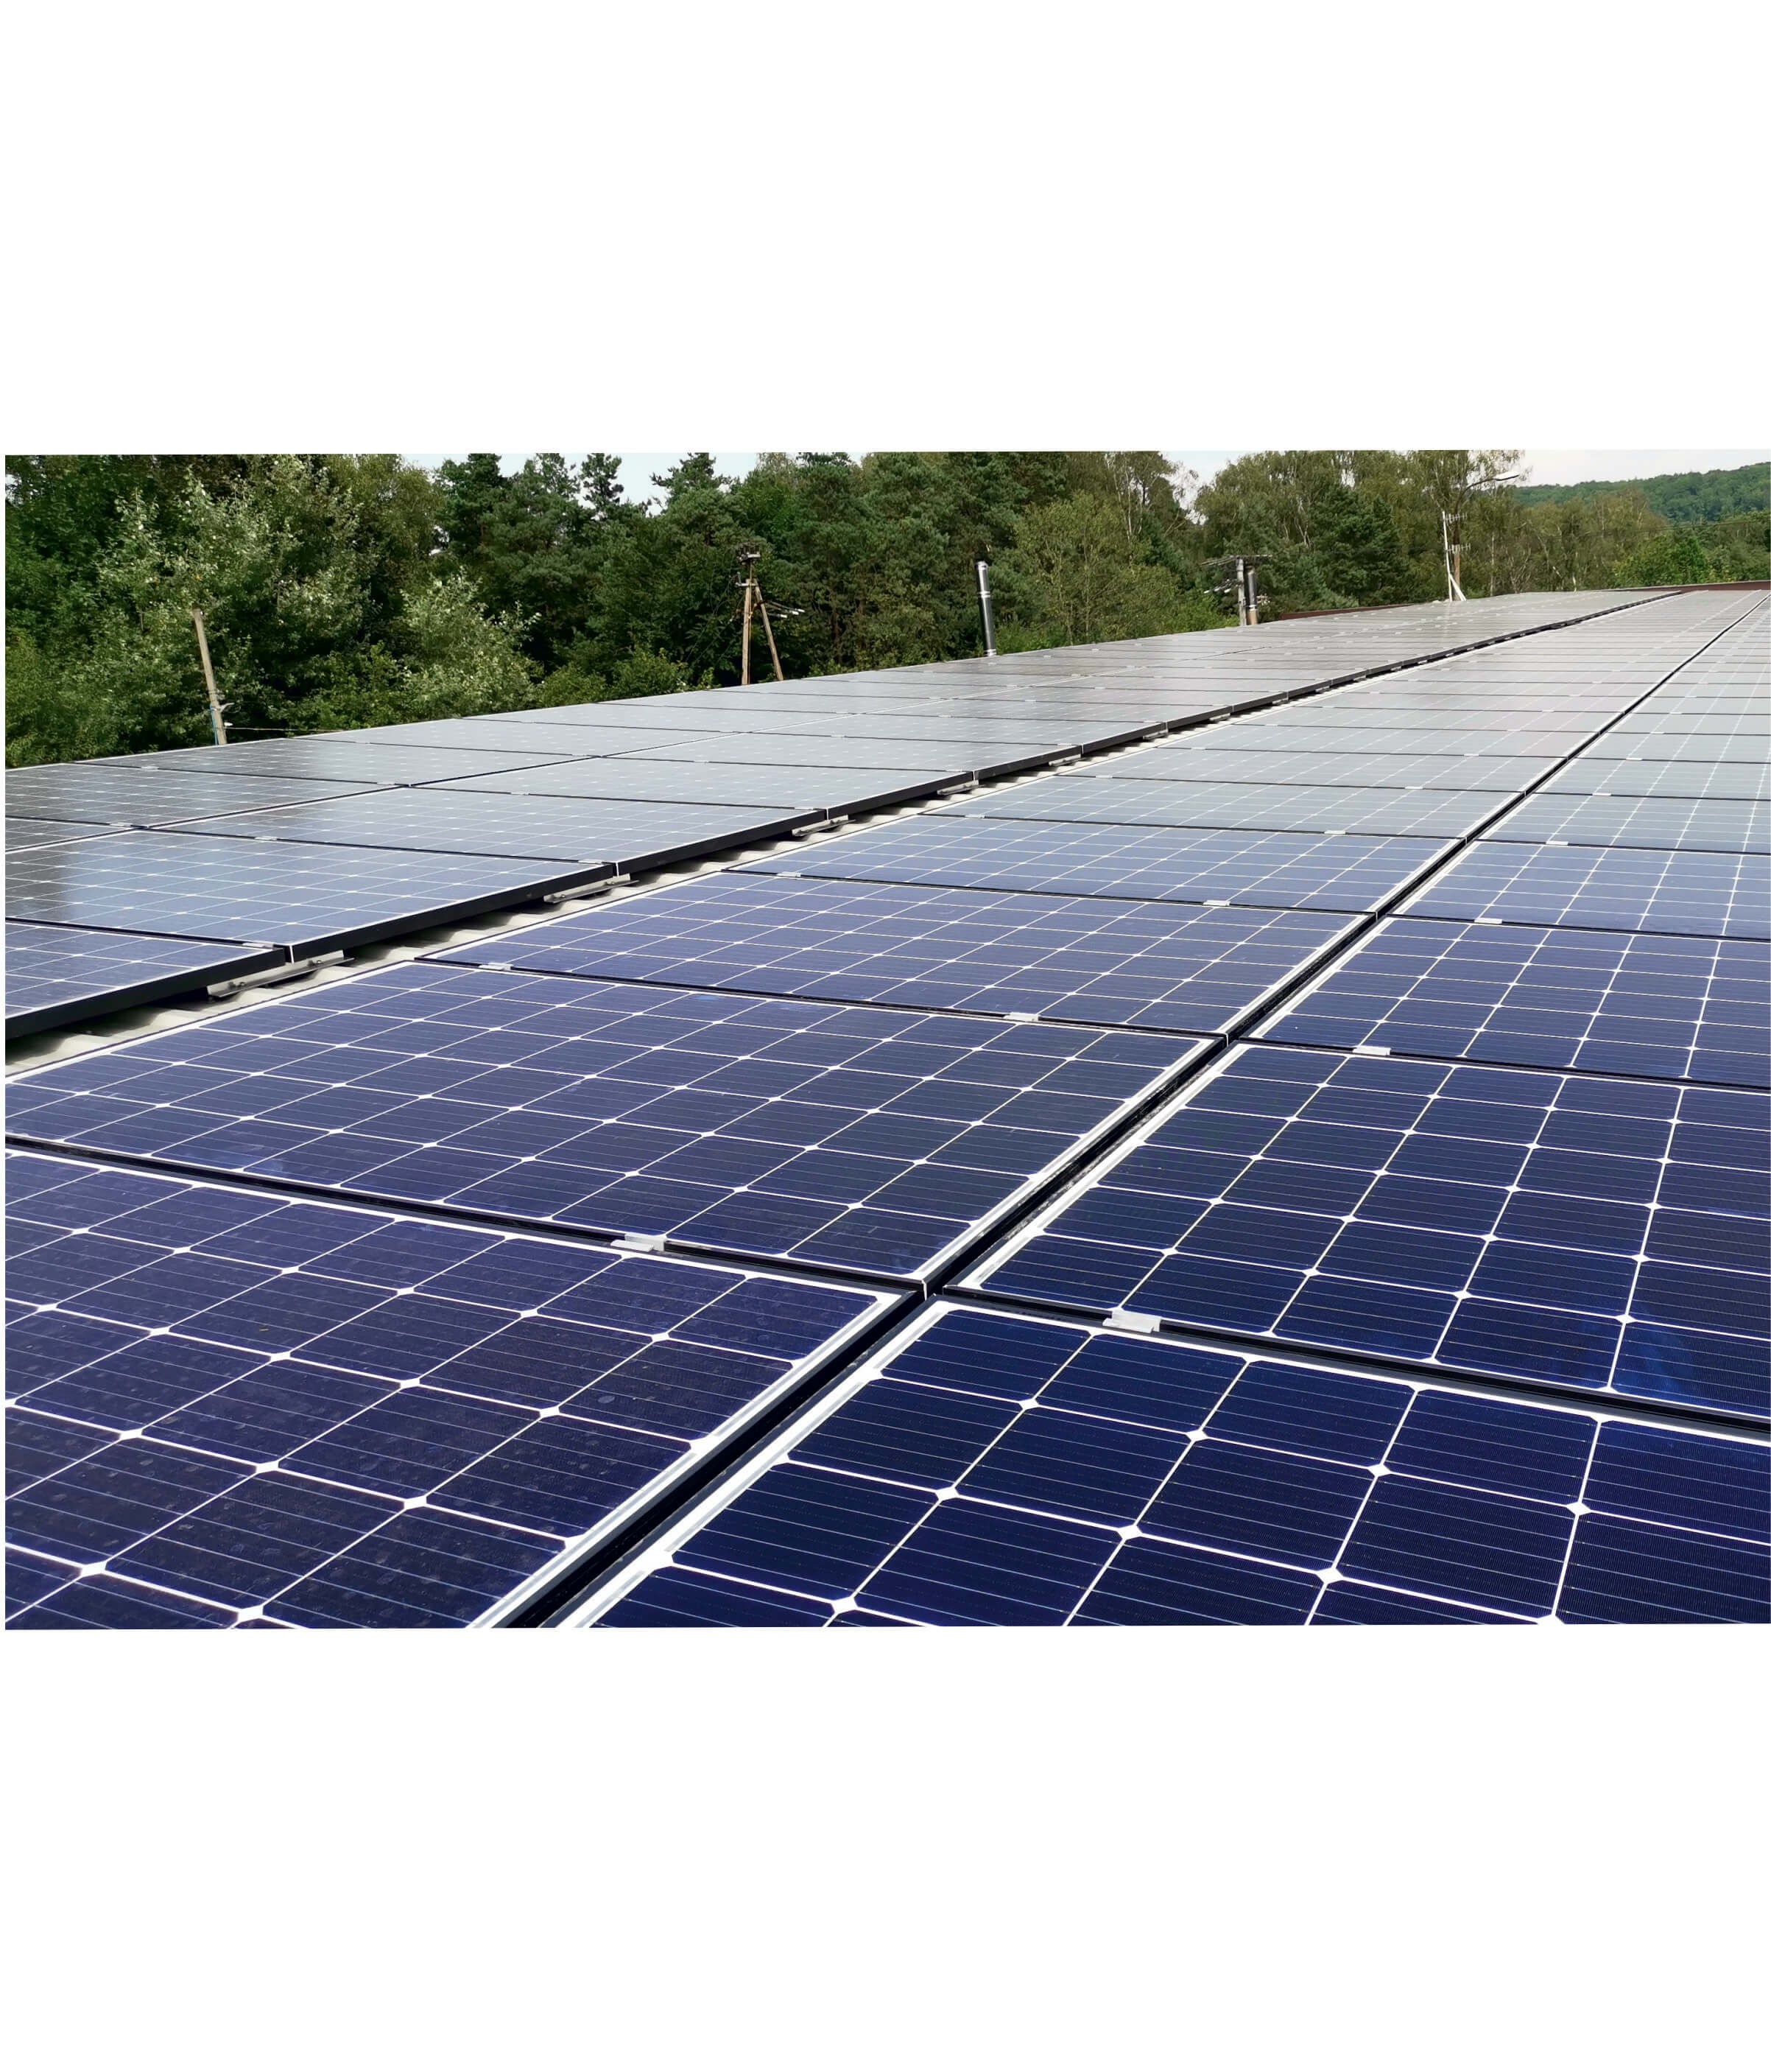 We focus on ecology! New investment in solar panels